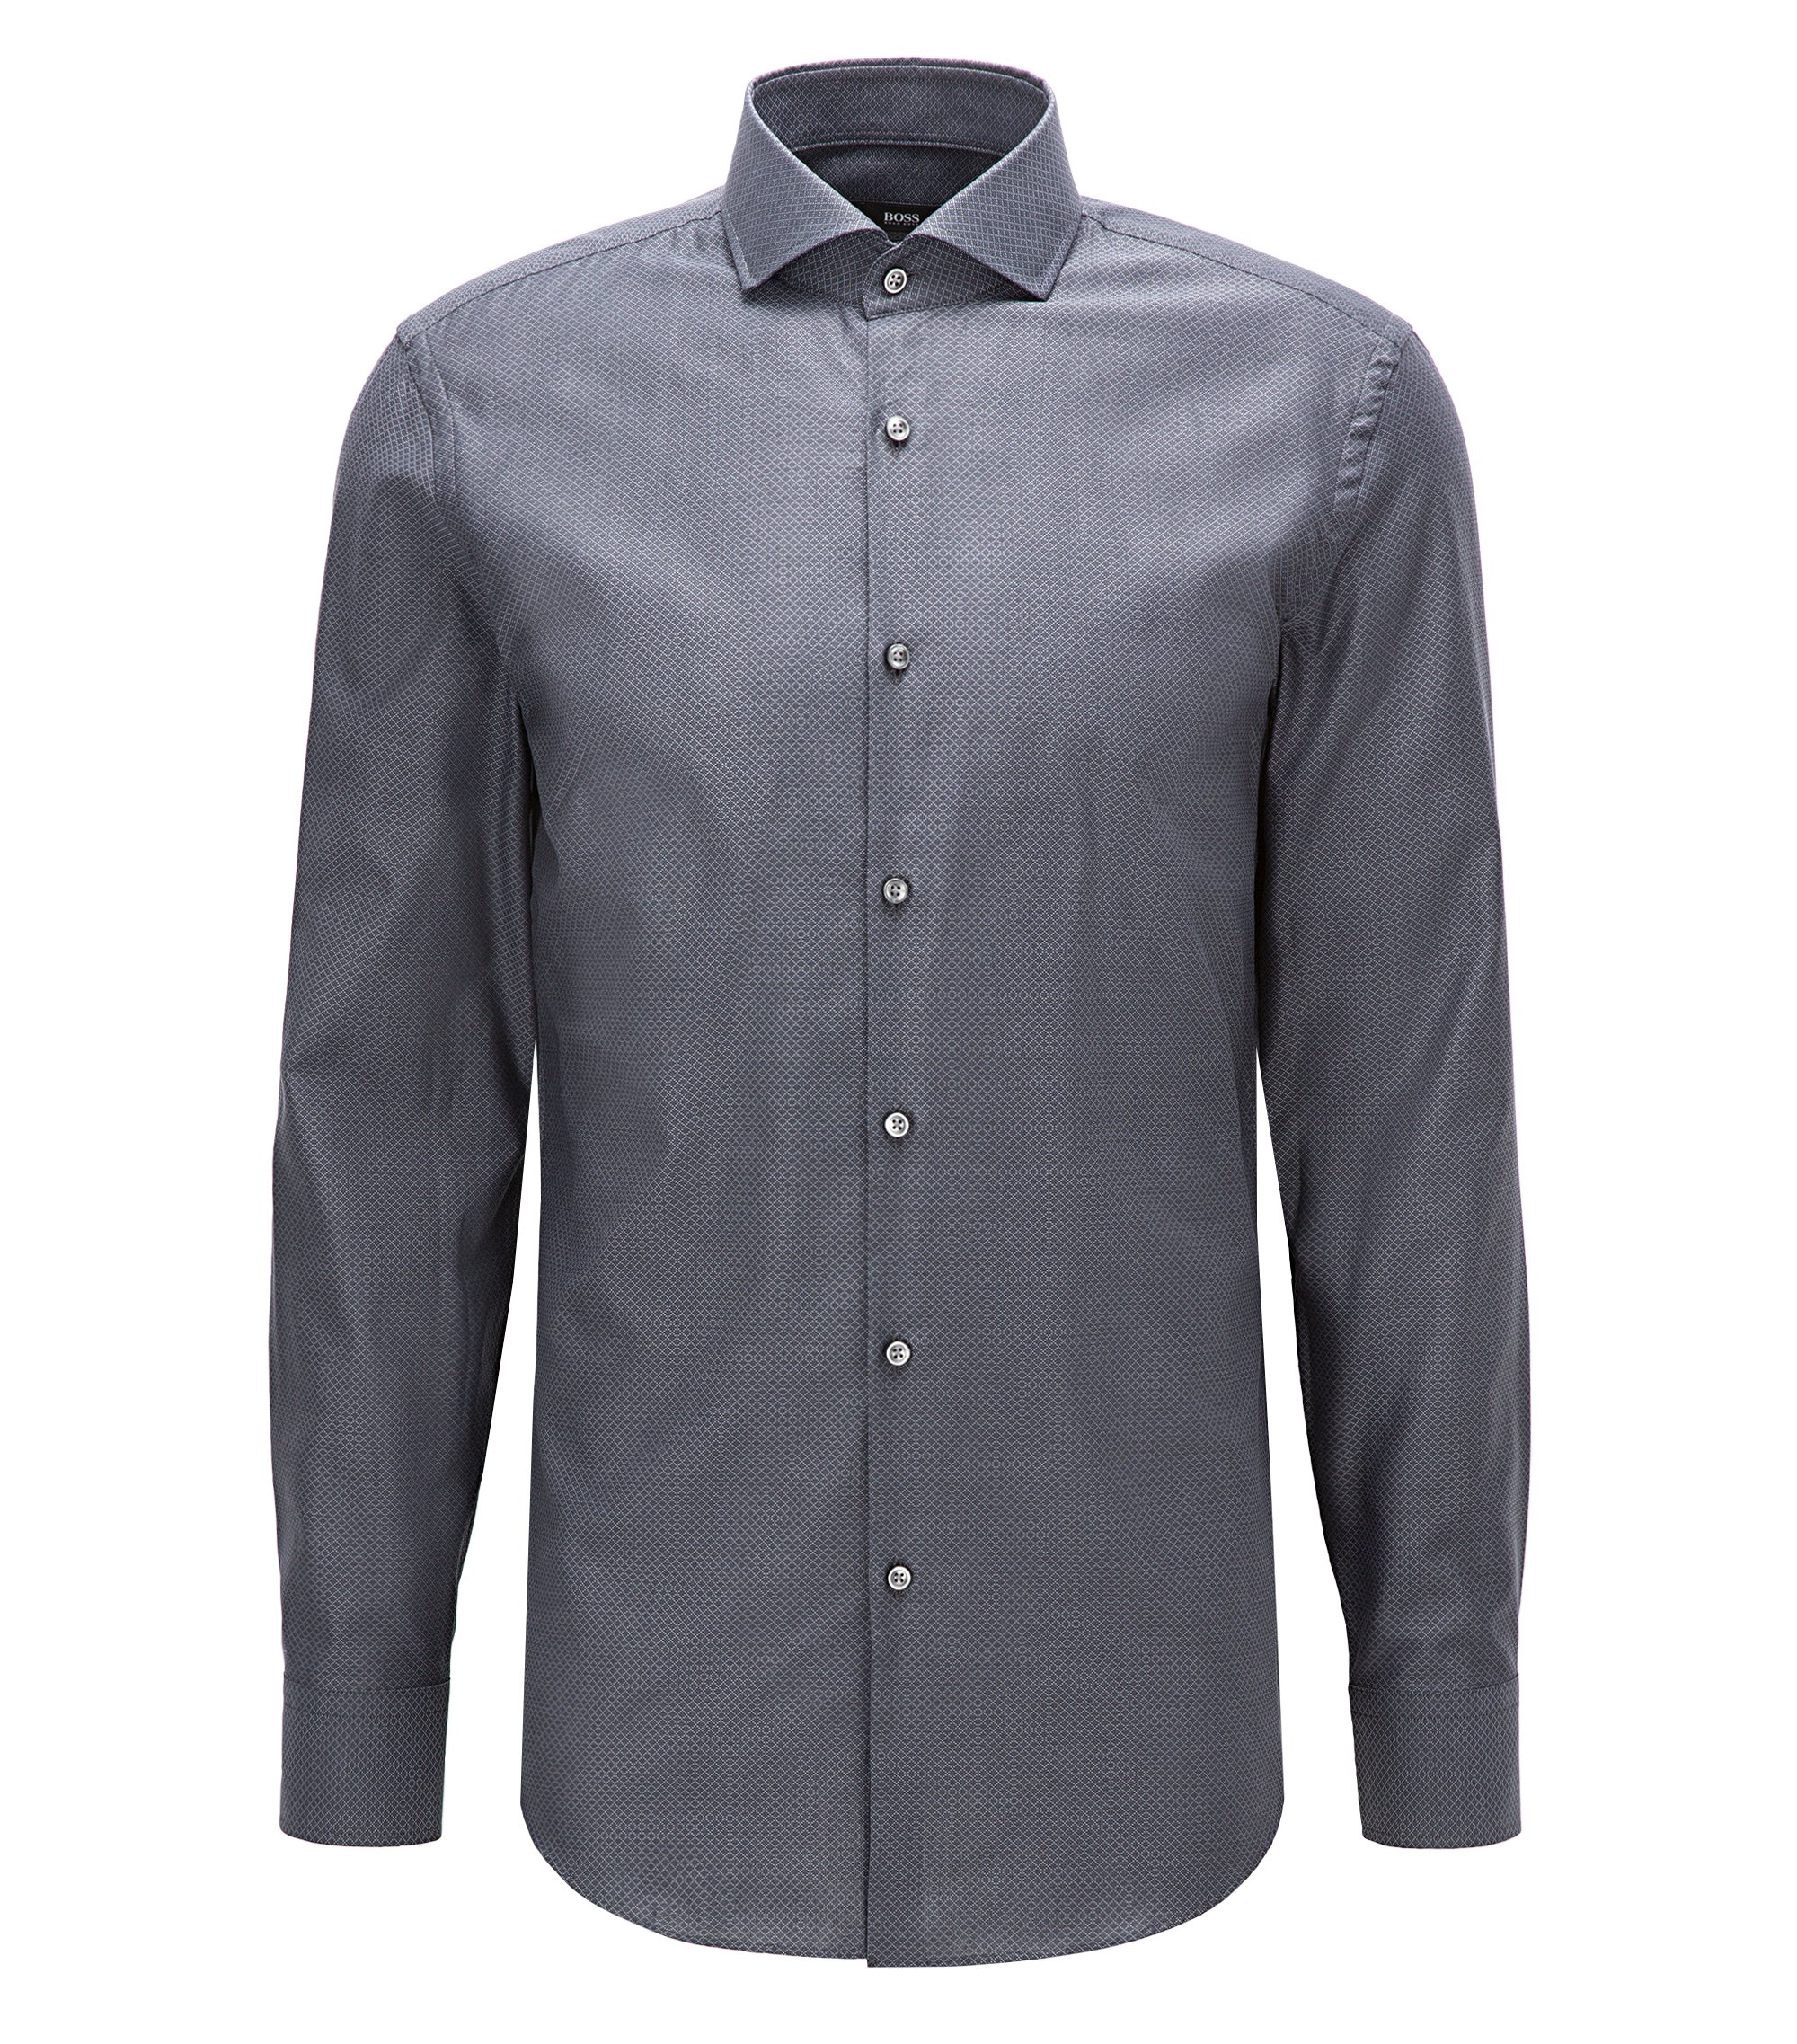 Chemise Slim Fit en coton bicolore structuré, Anthracite